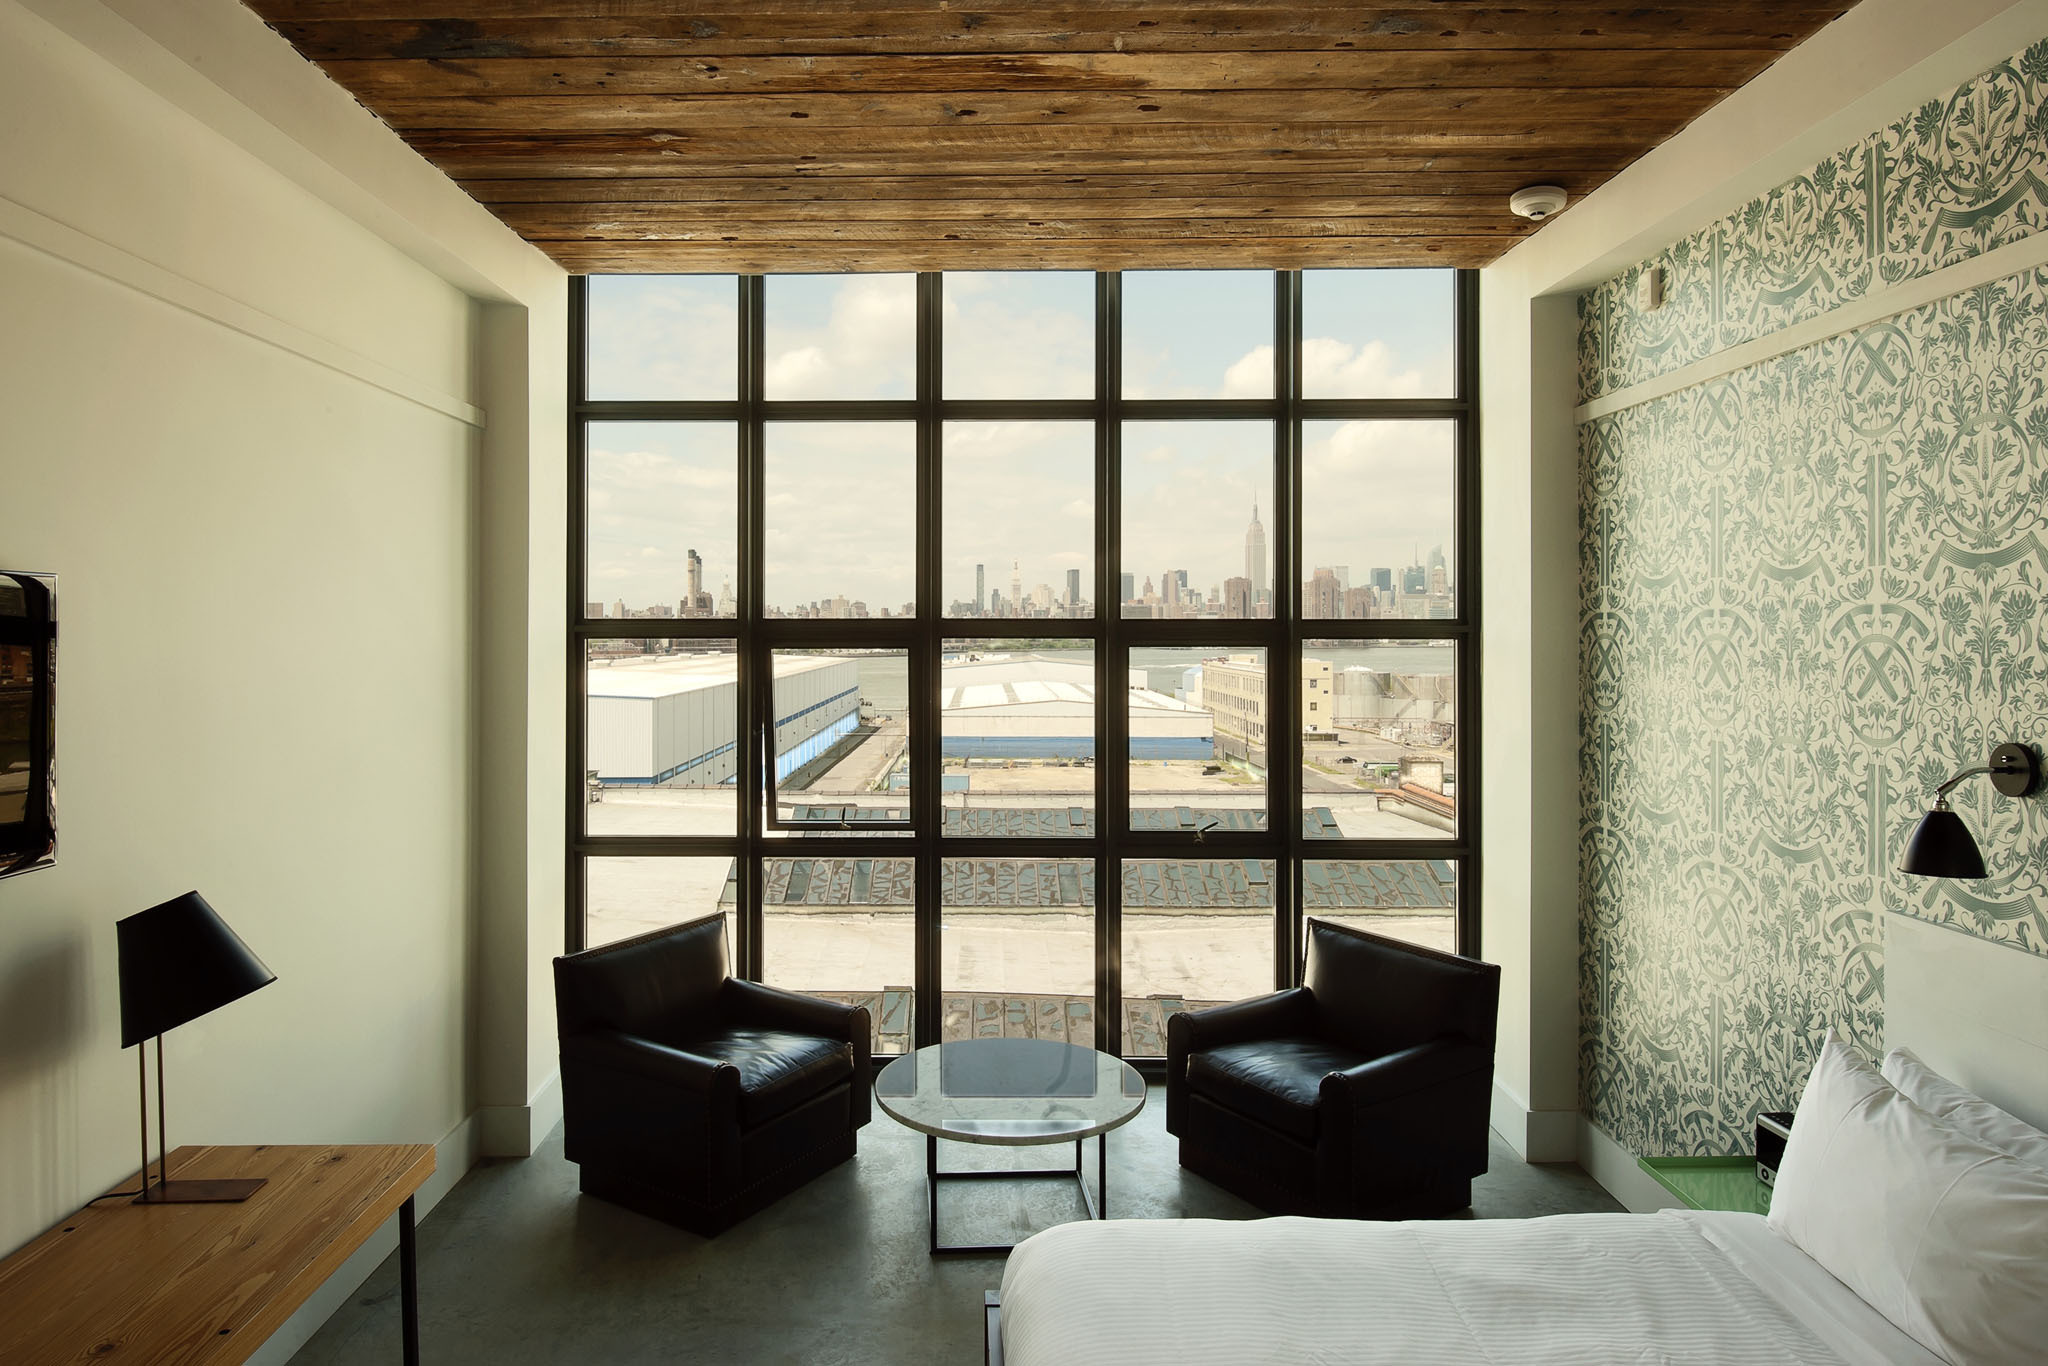 Best outer-borough hotels